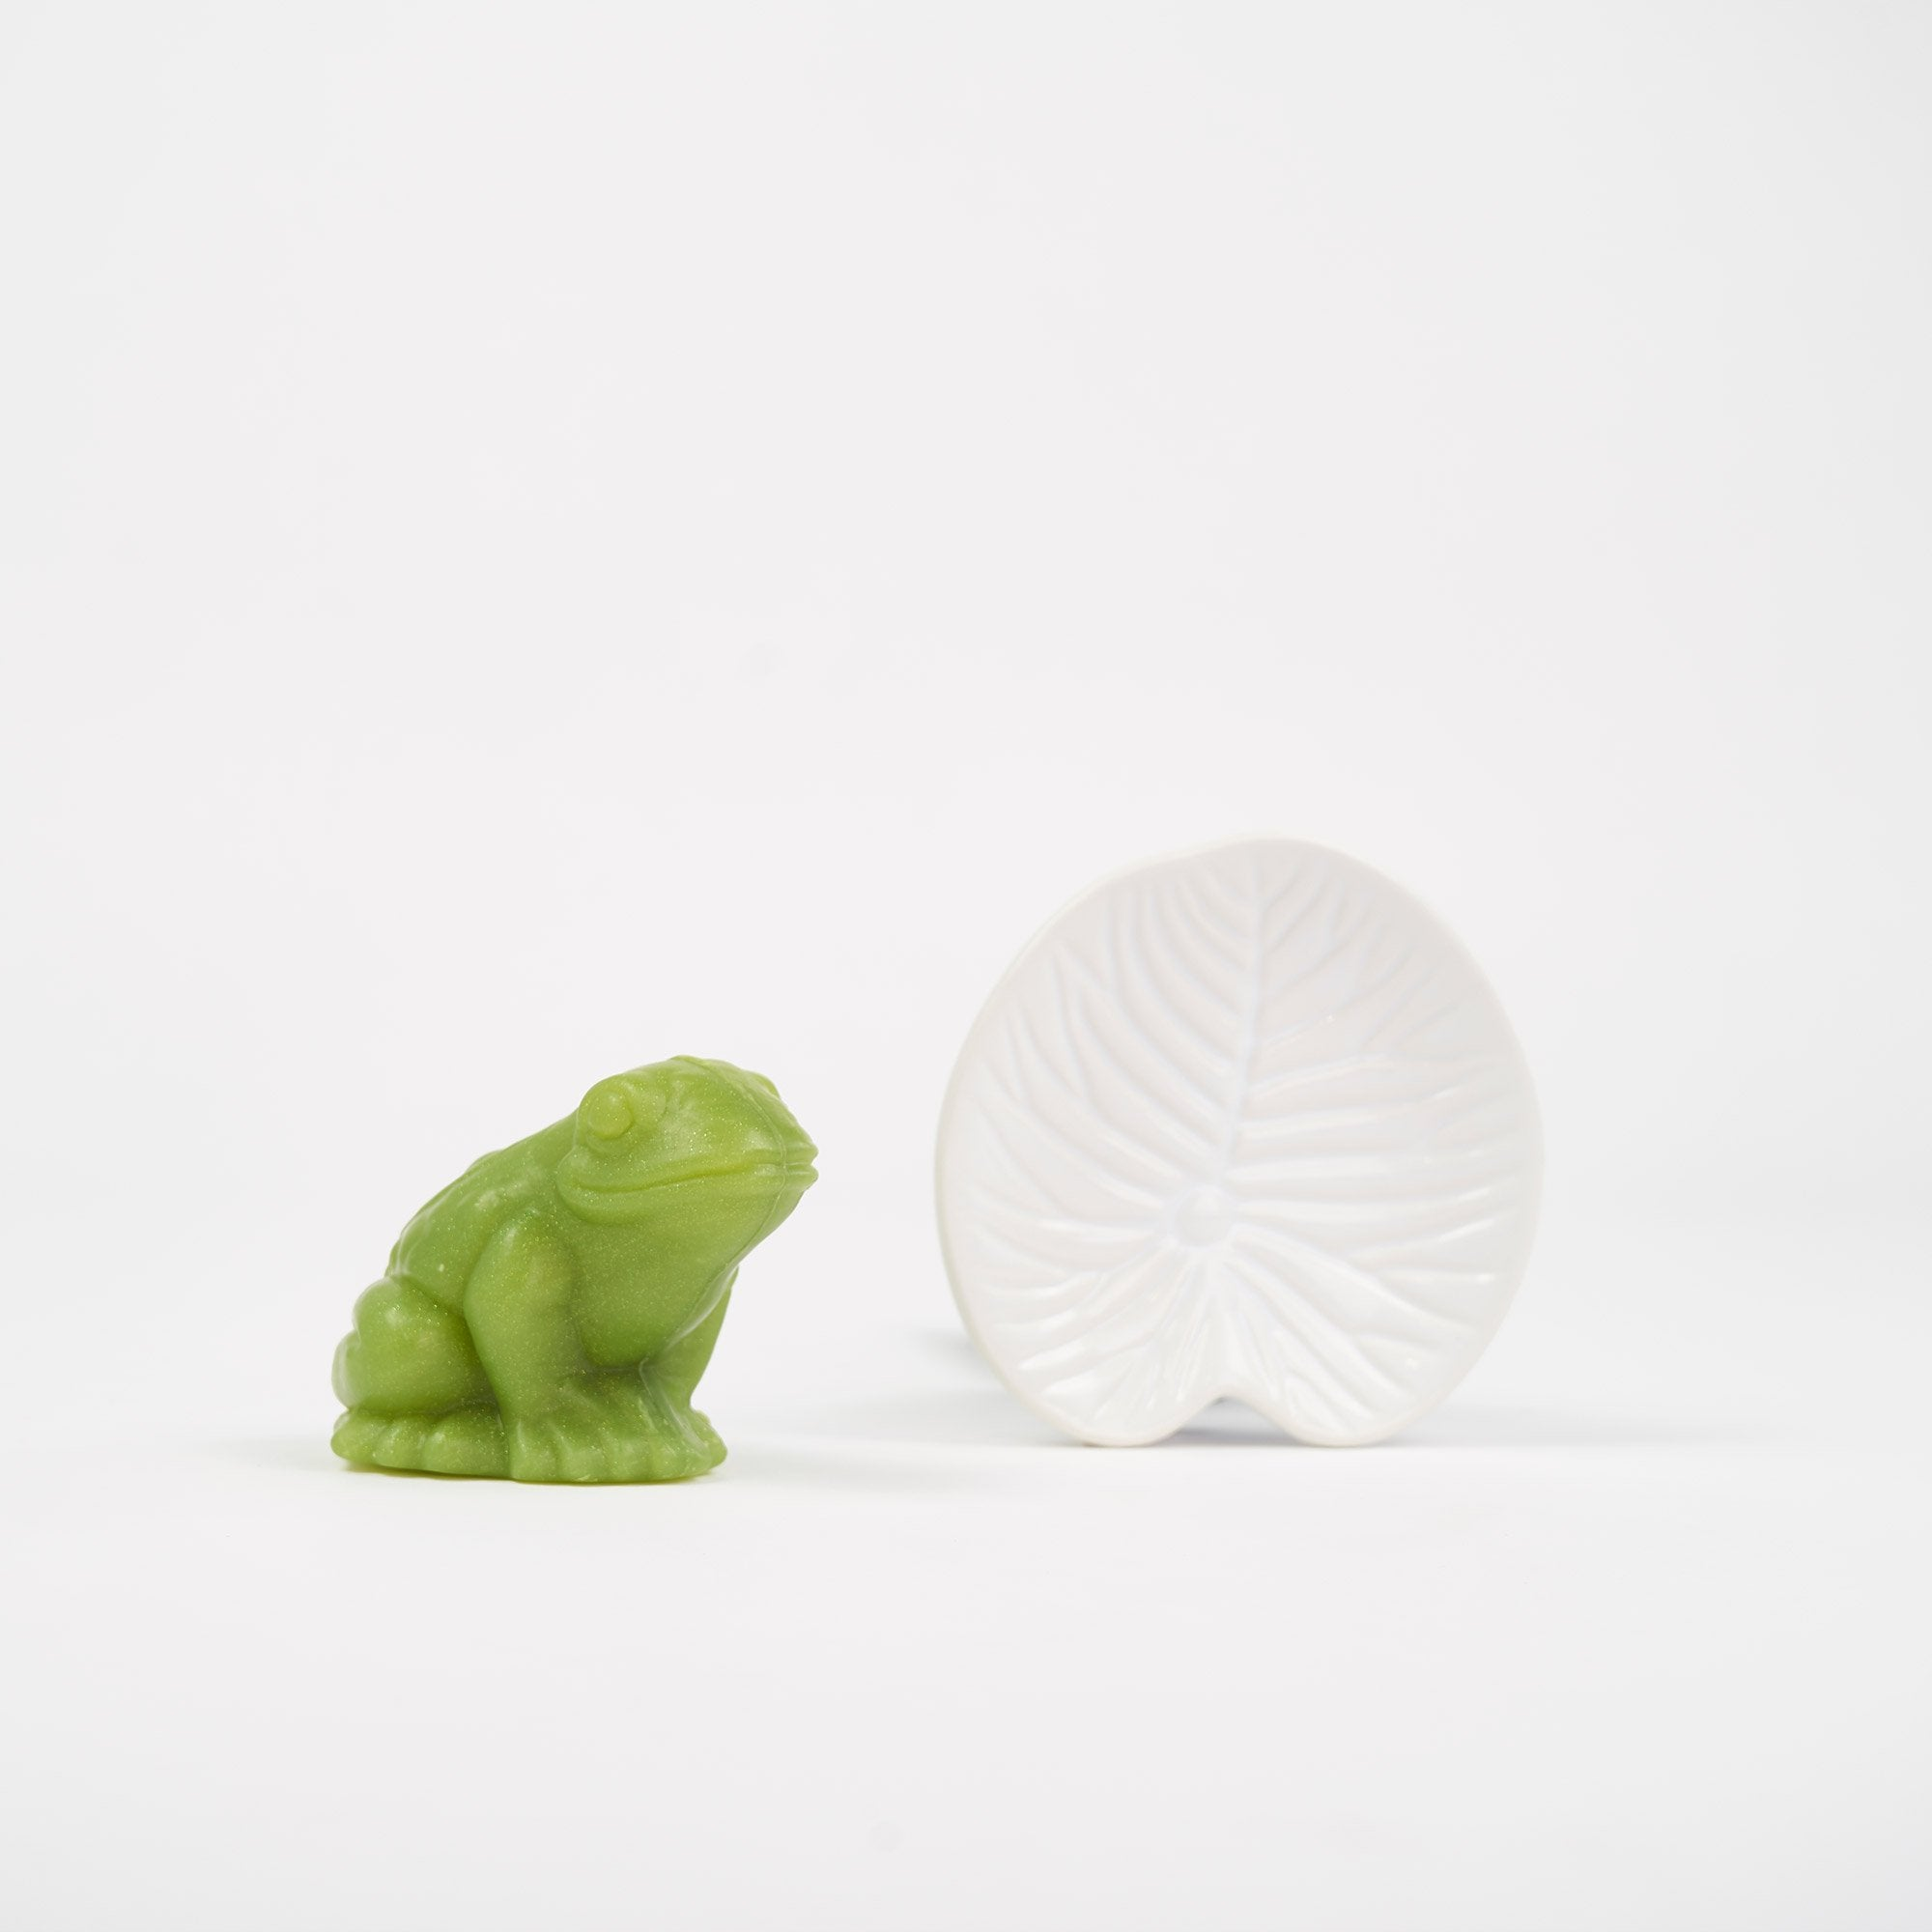 Magic Frog Shaped Soap with Lily-Pad Porcelain Dish